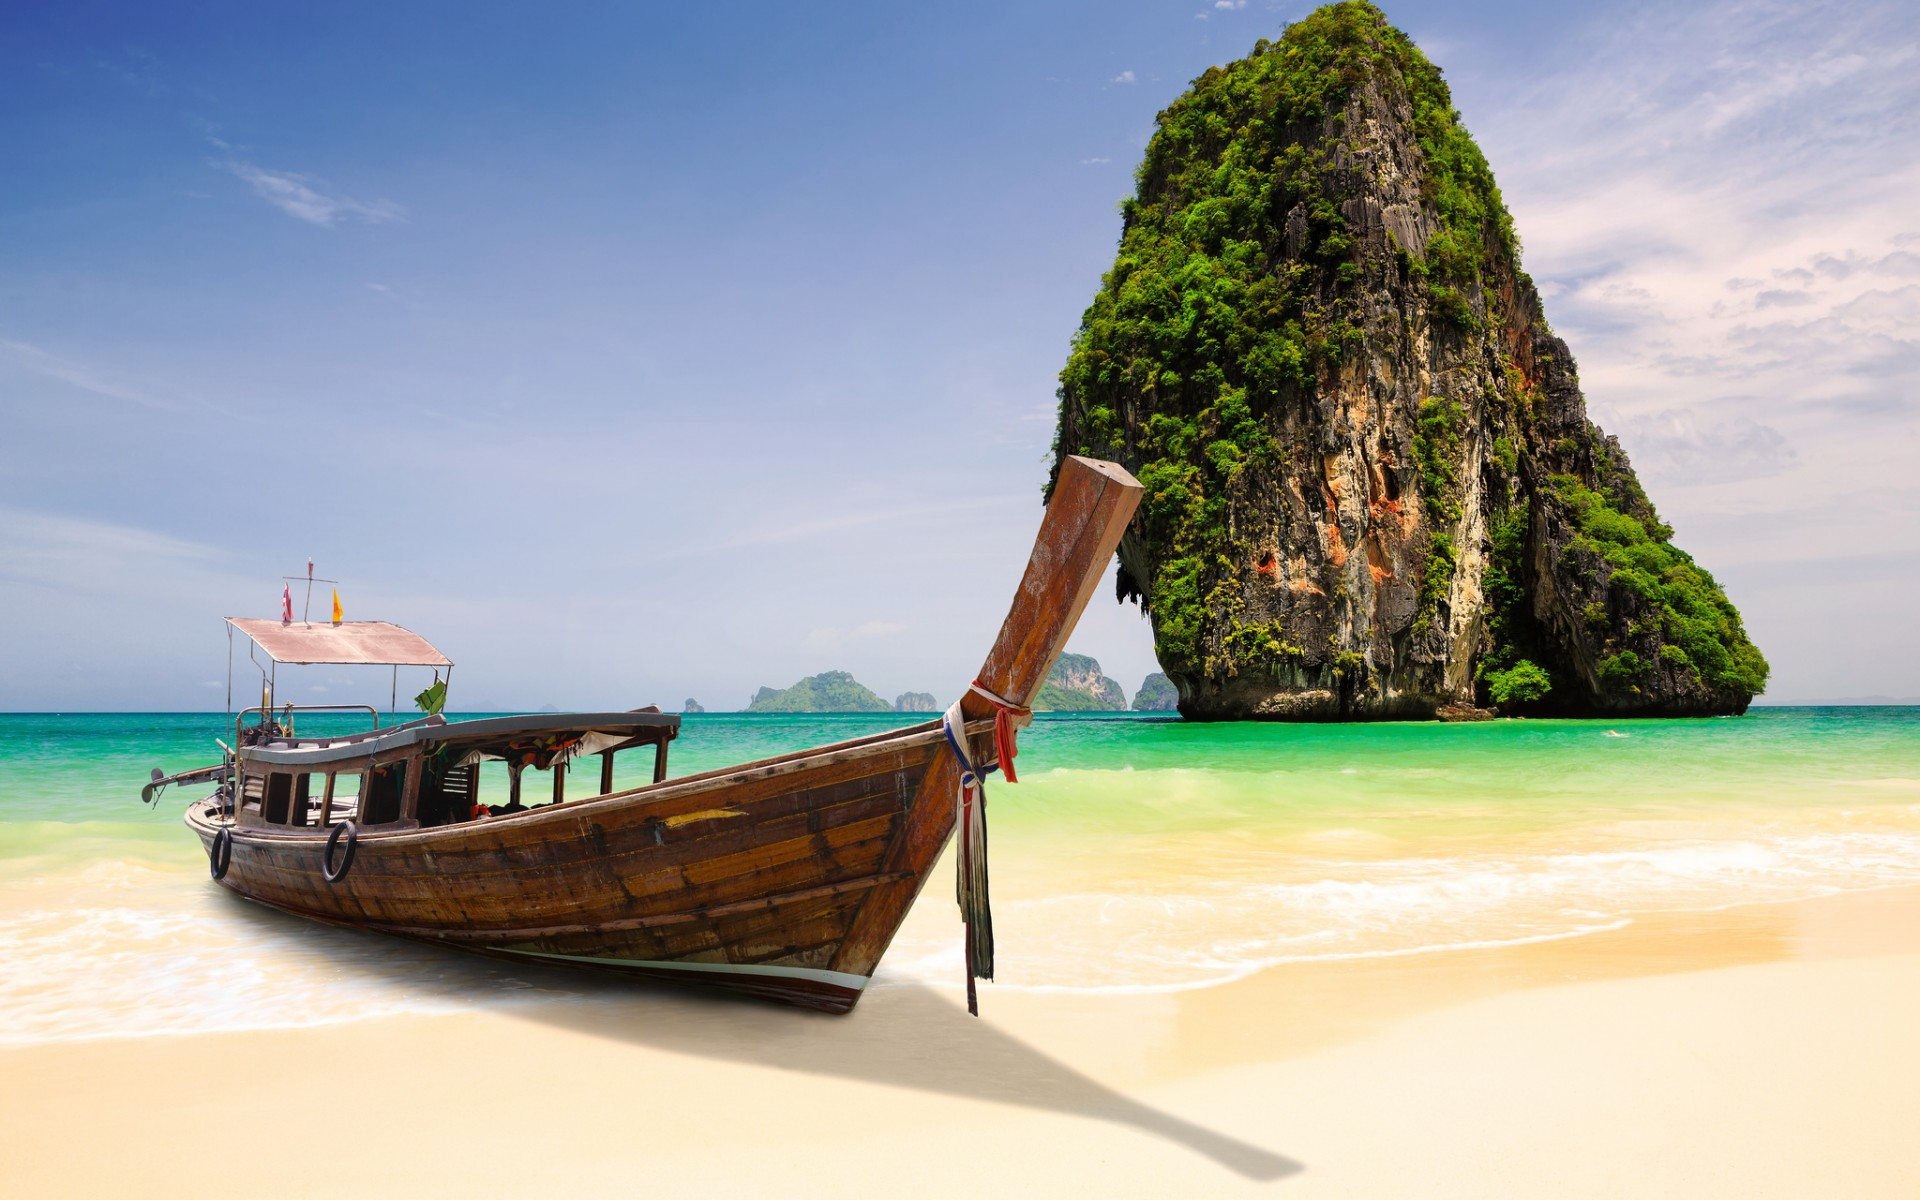 Krabi Thailand  City new picture : Krabi || Thailand – Weirdly Beautiful Places # 1 | Khichdi Online ...